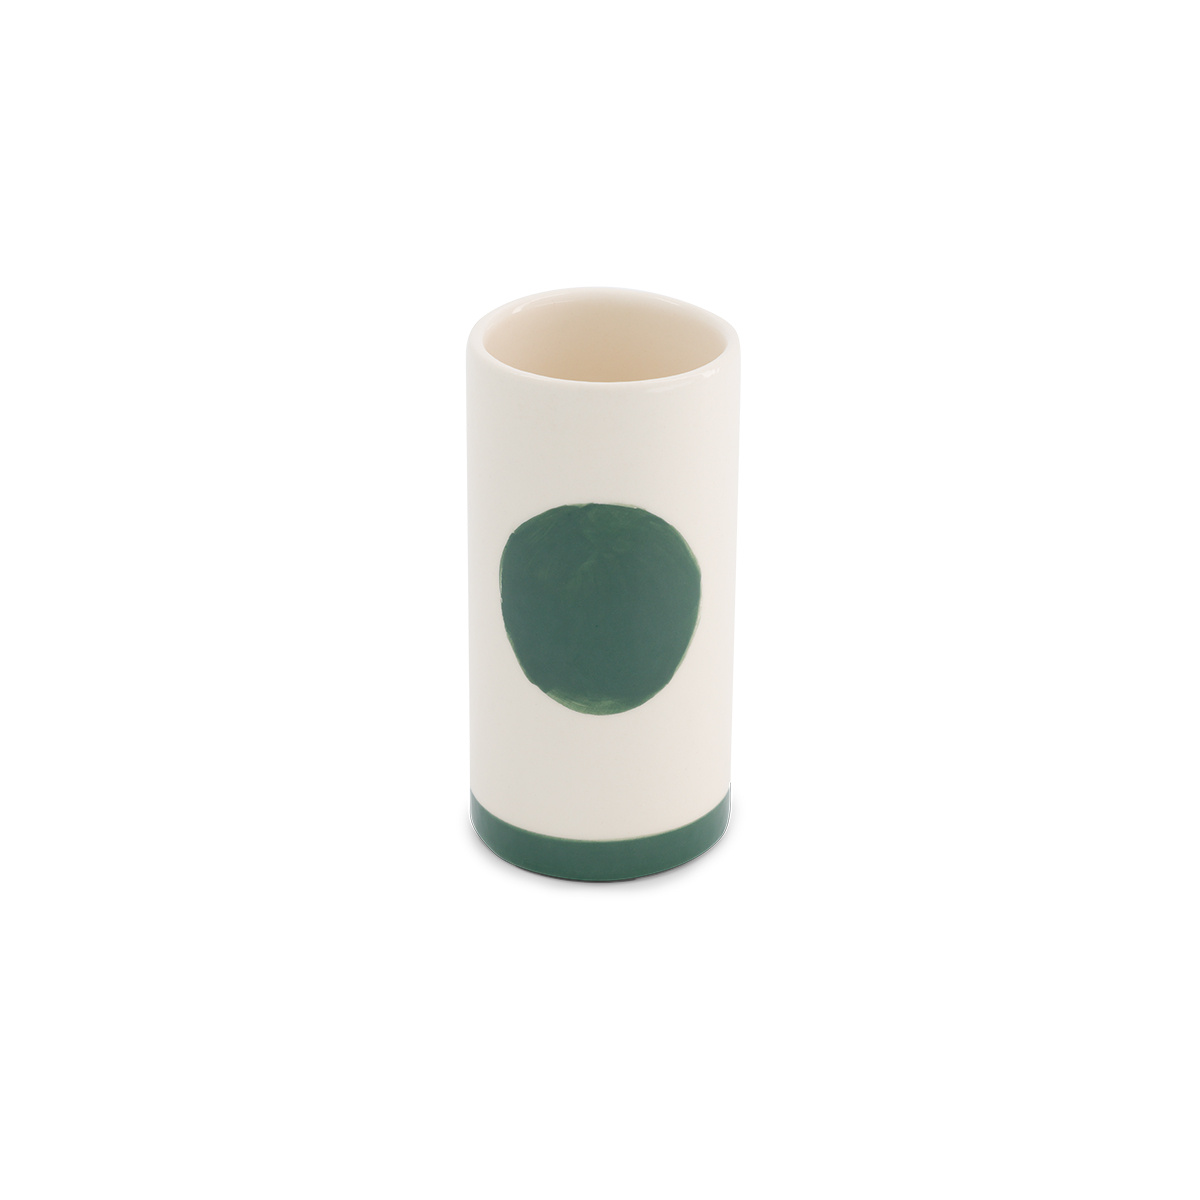 Domino pot small model with green pattern